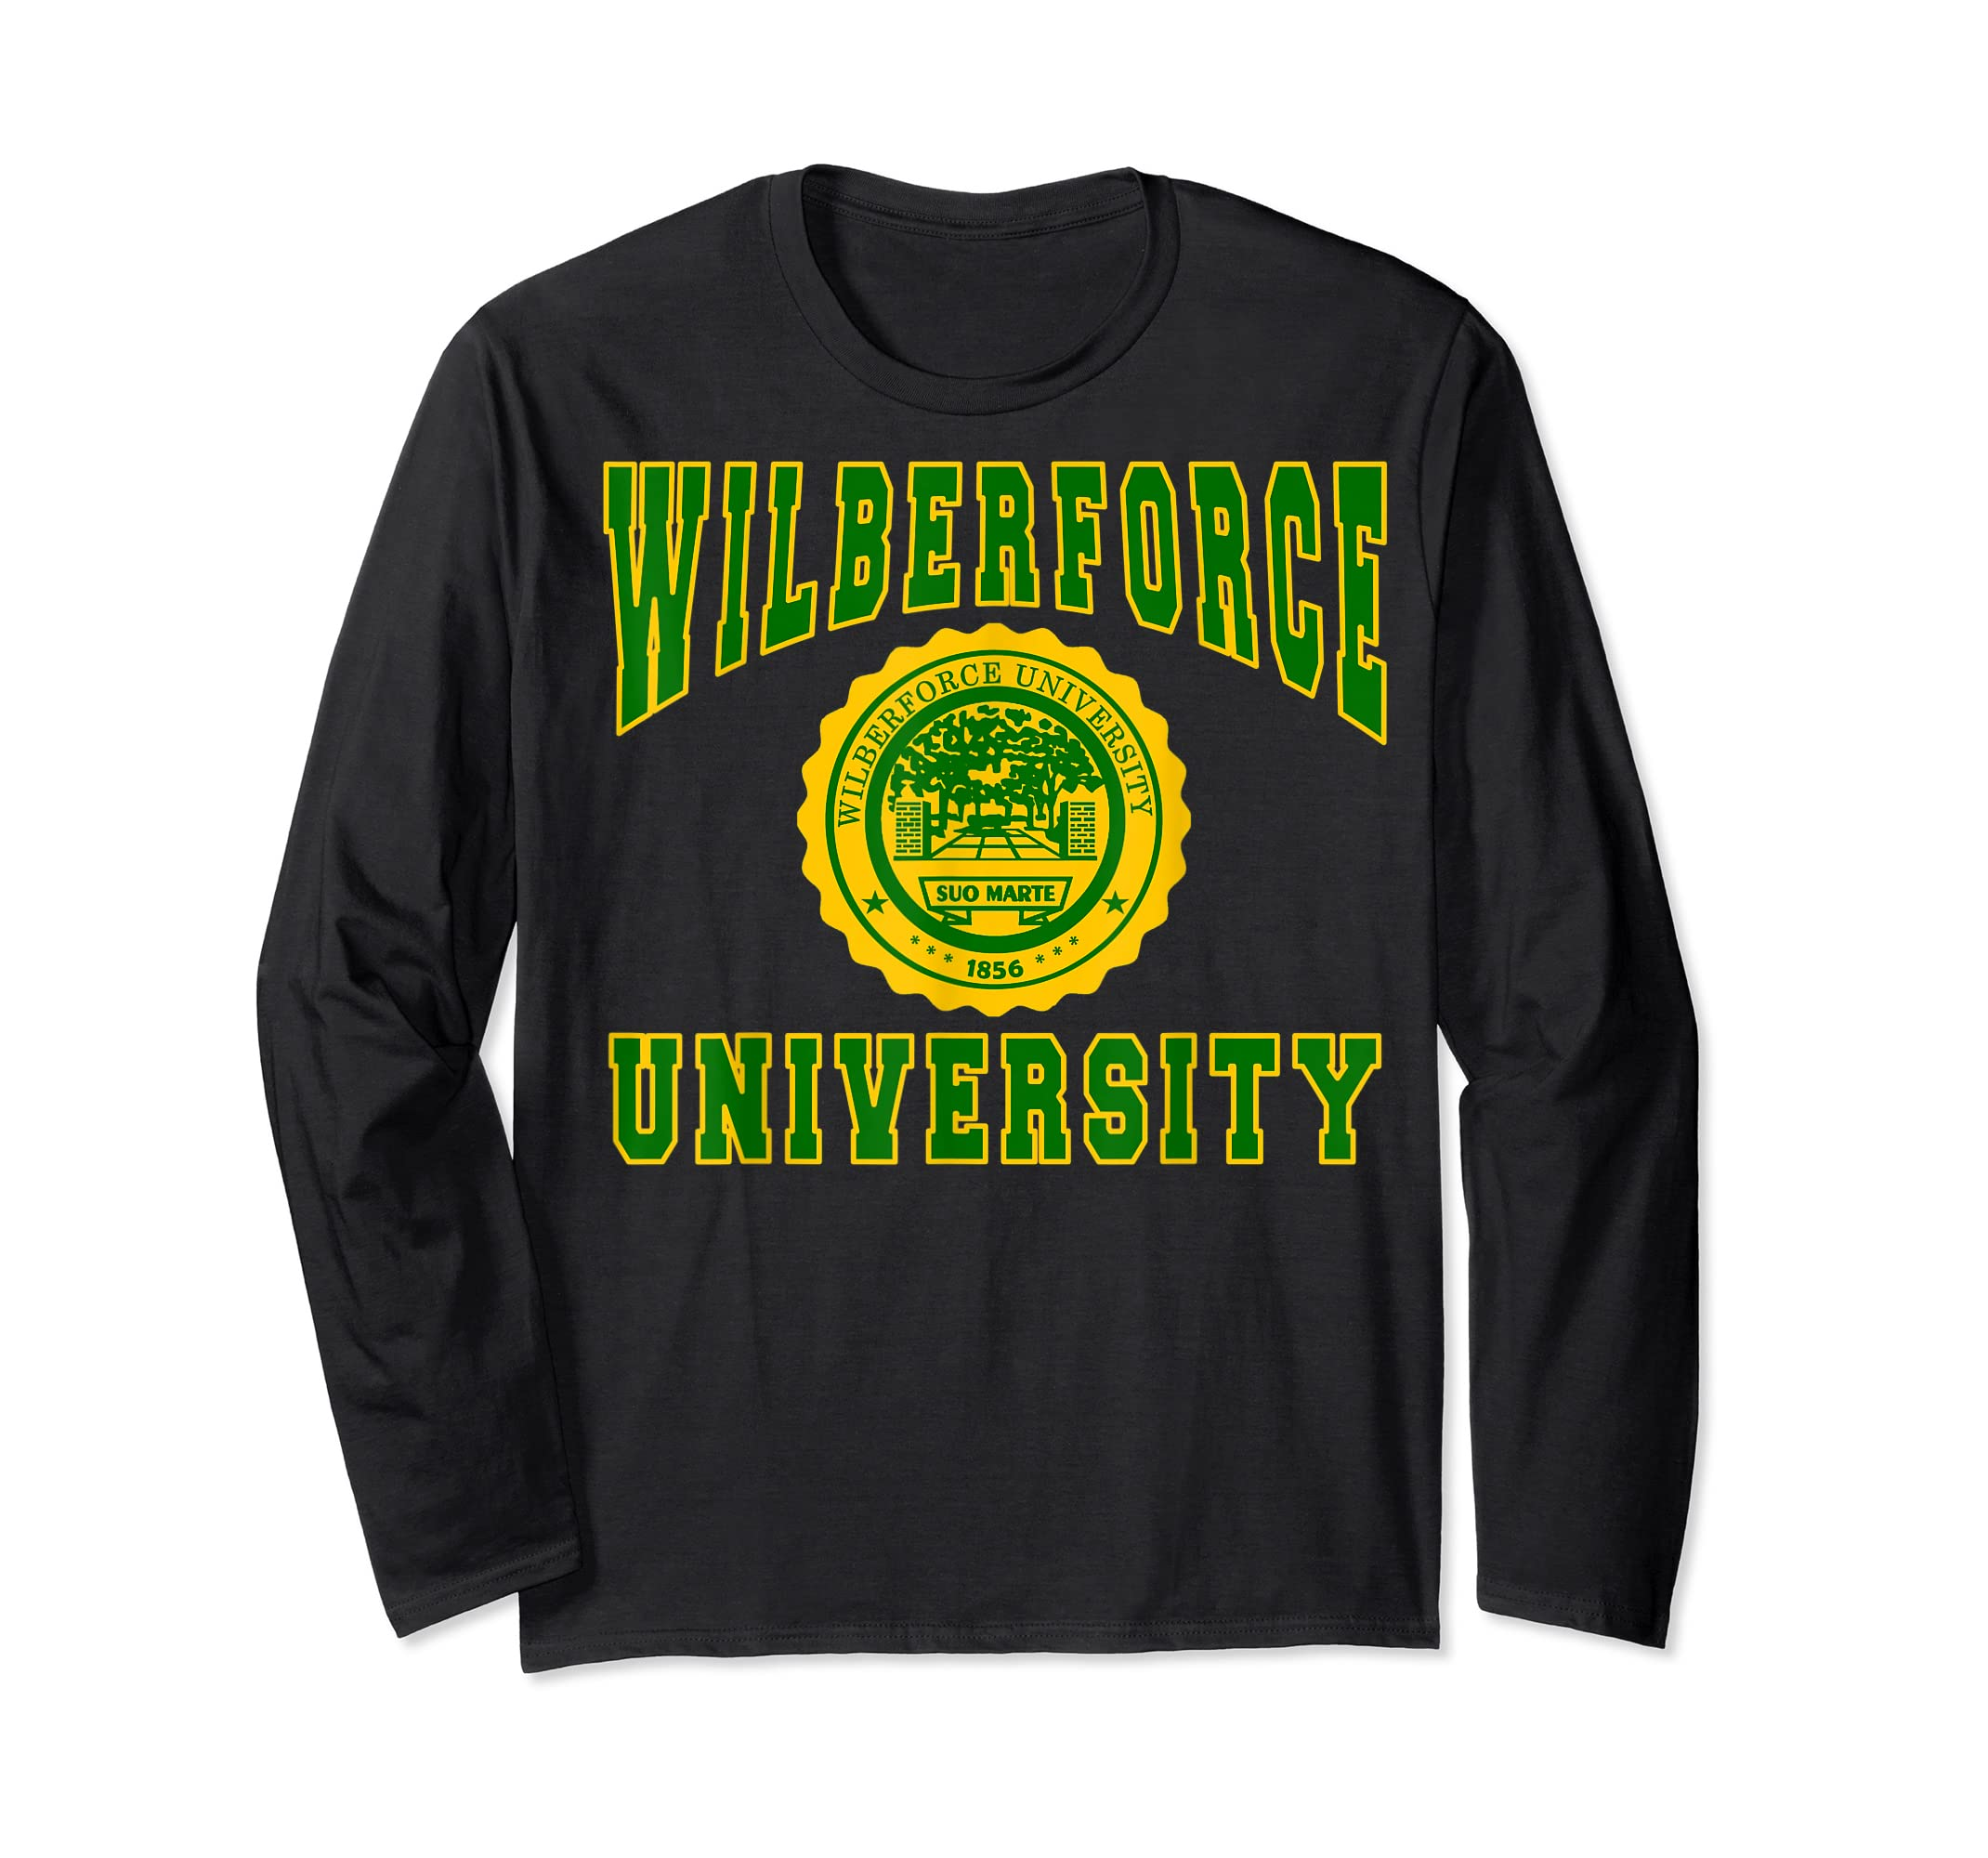 Wilberforce 1856 University Apparel - T shirt-Long Sleeve-Black